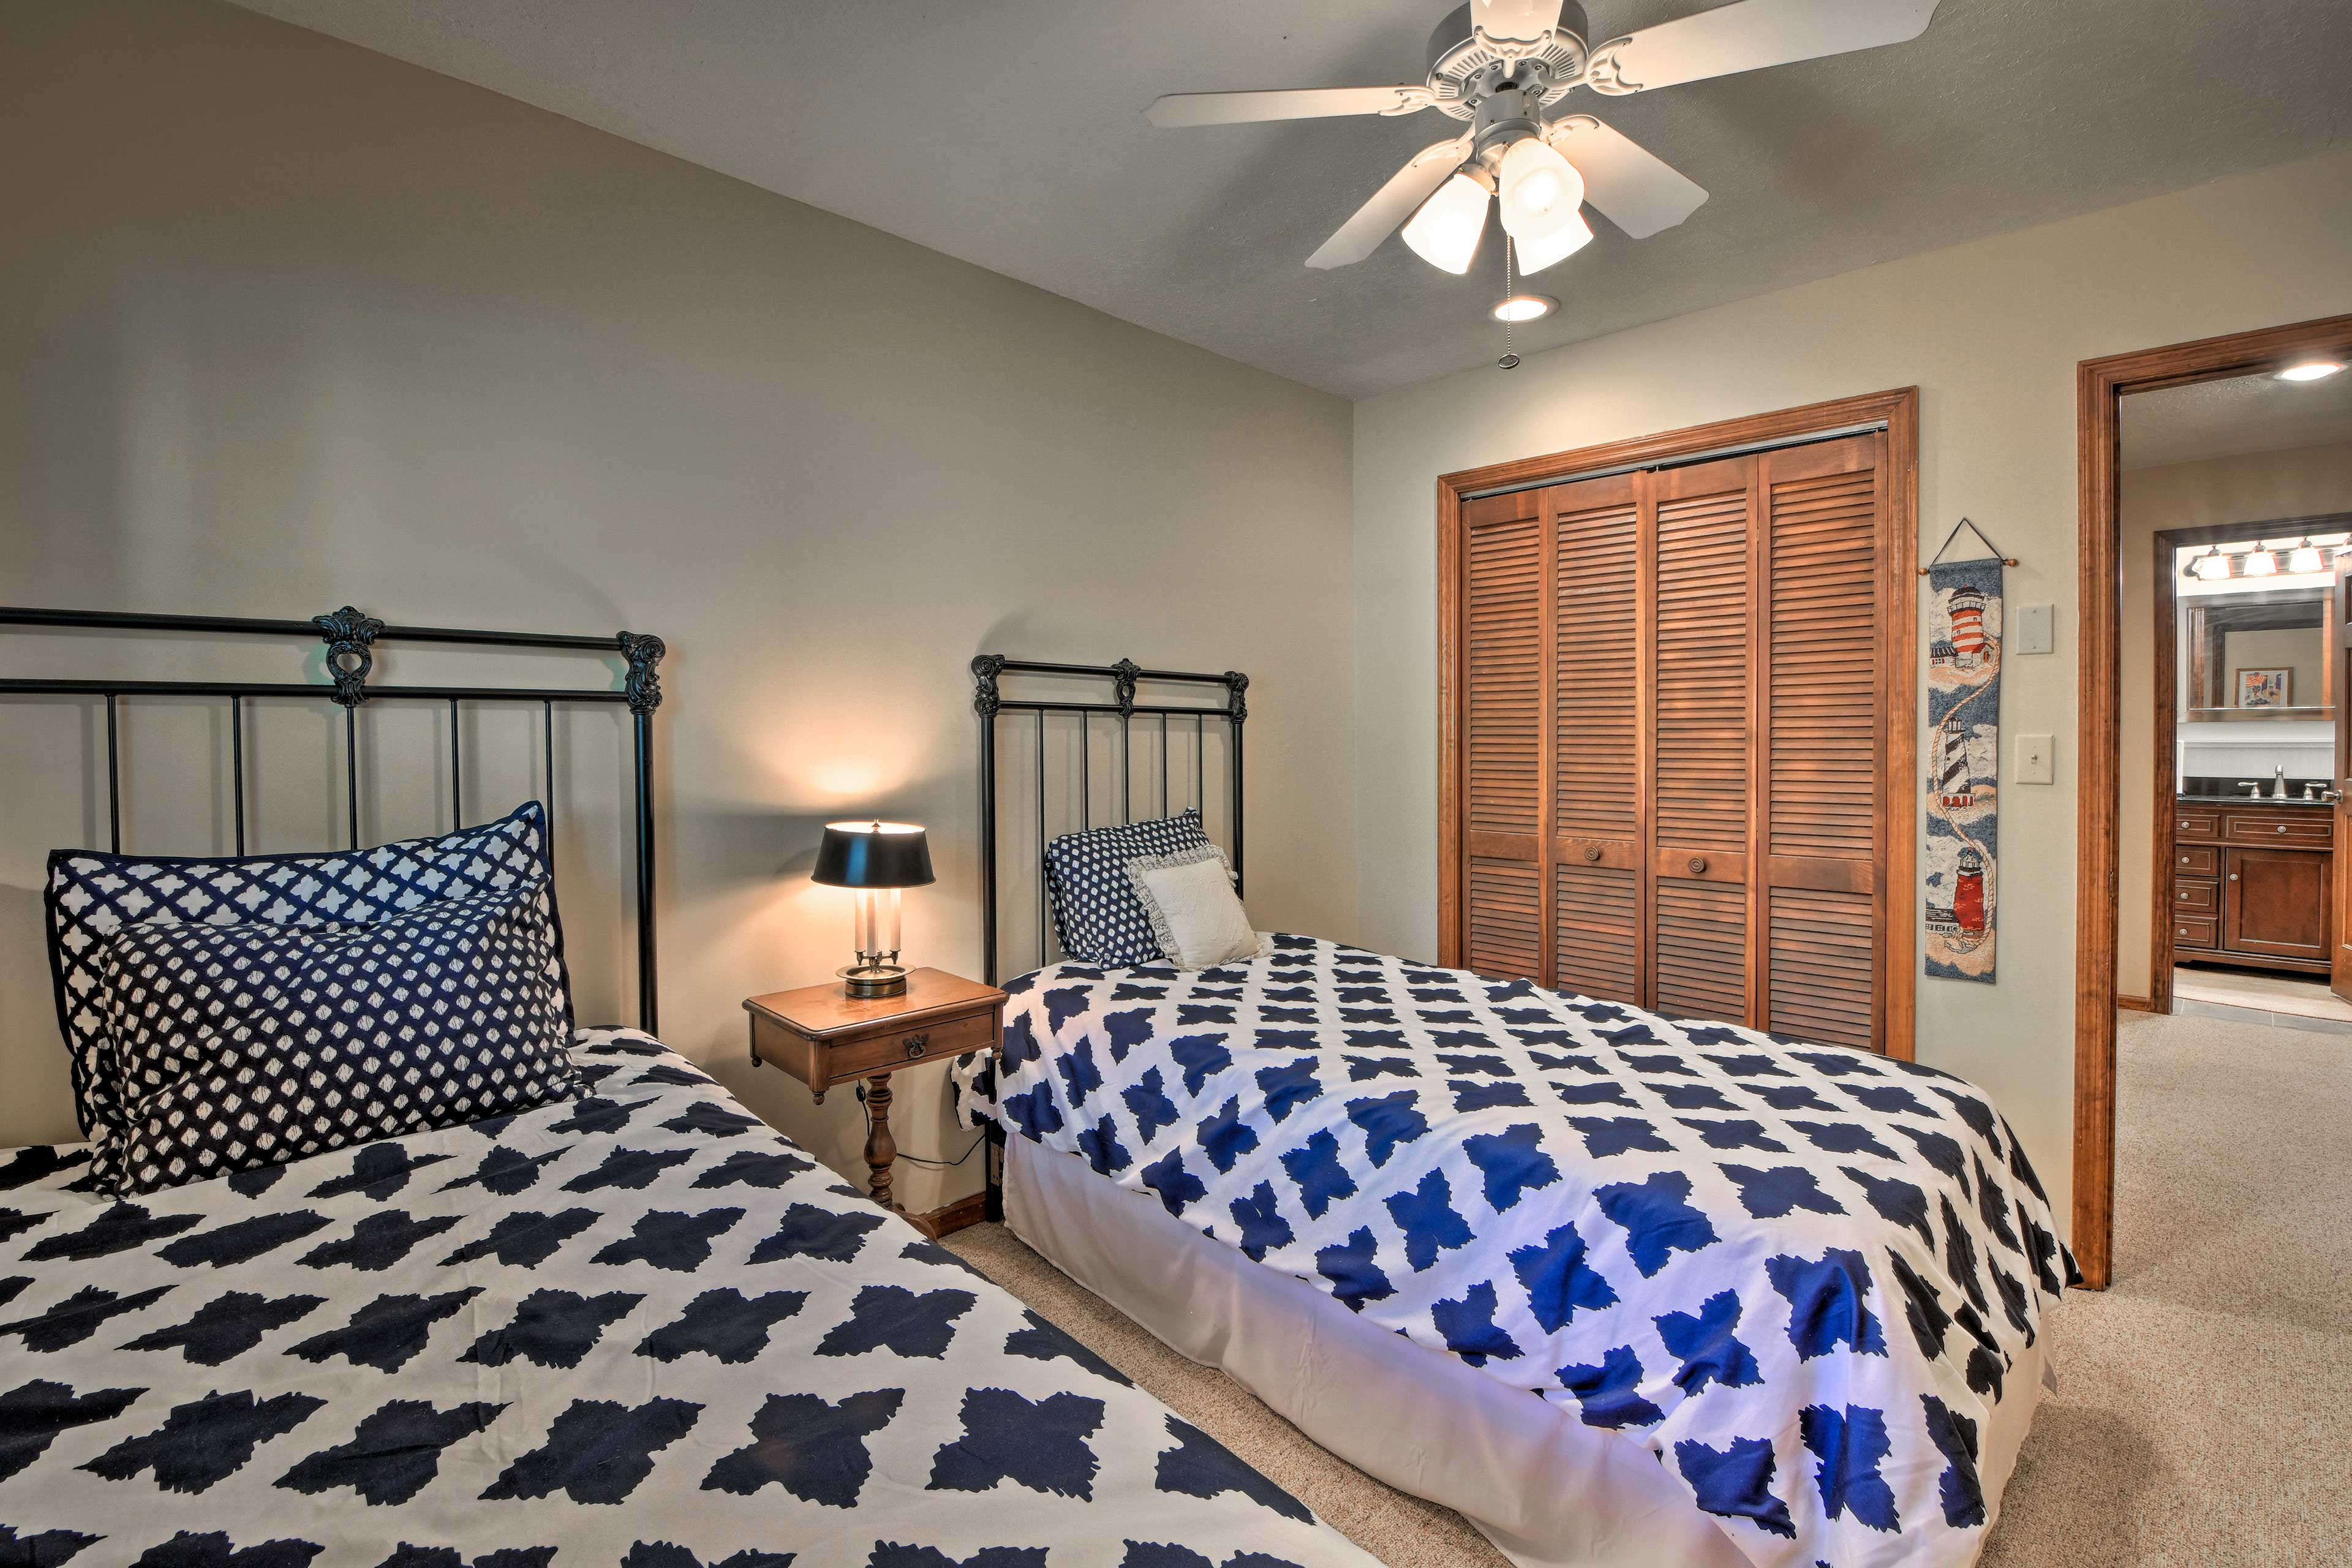 A closet and ceiling fan are additional bedroom highlights.